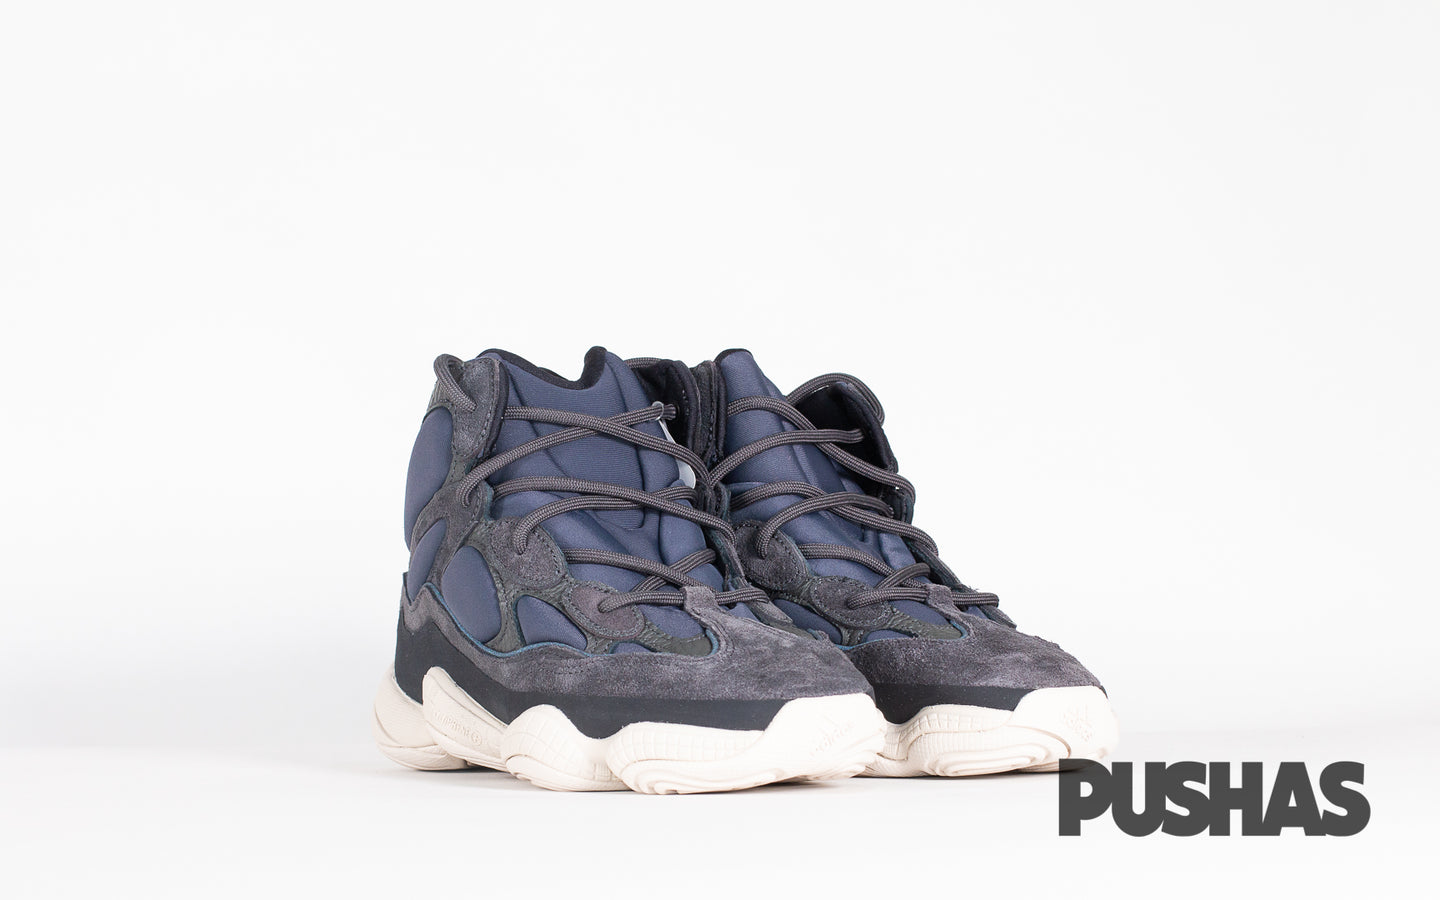 pushas-adidas-Yeezy-500-High-Slate